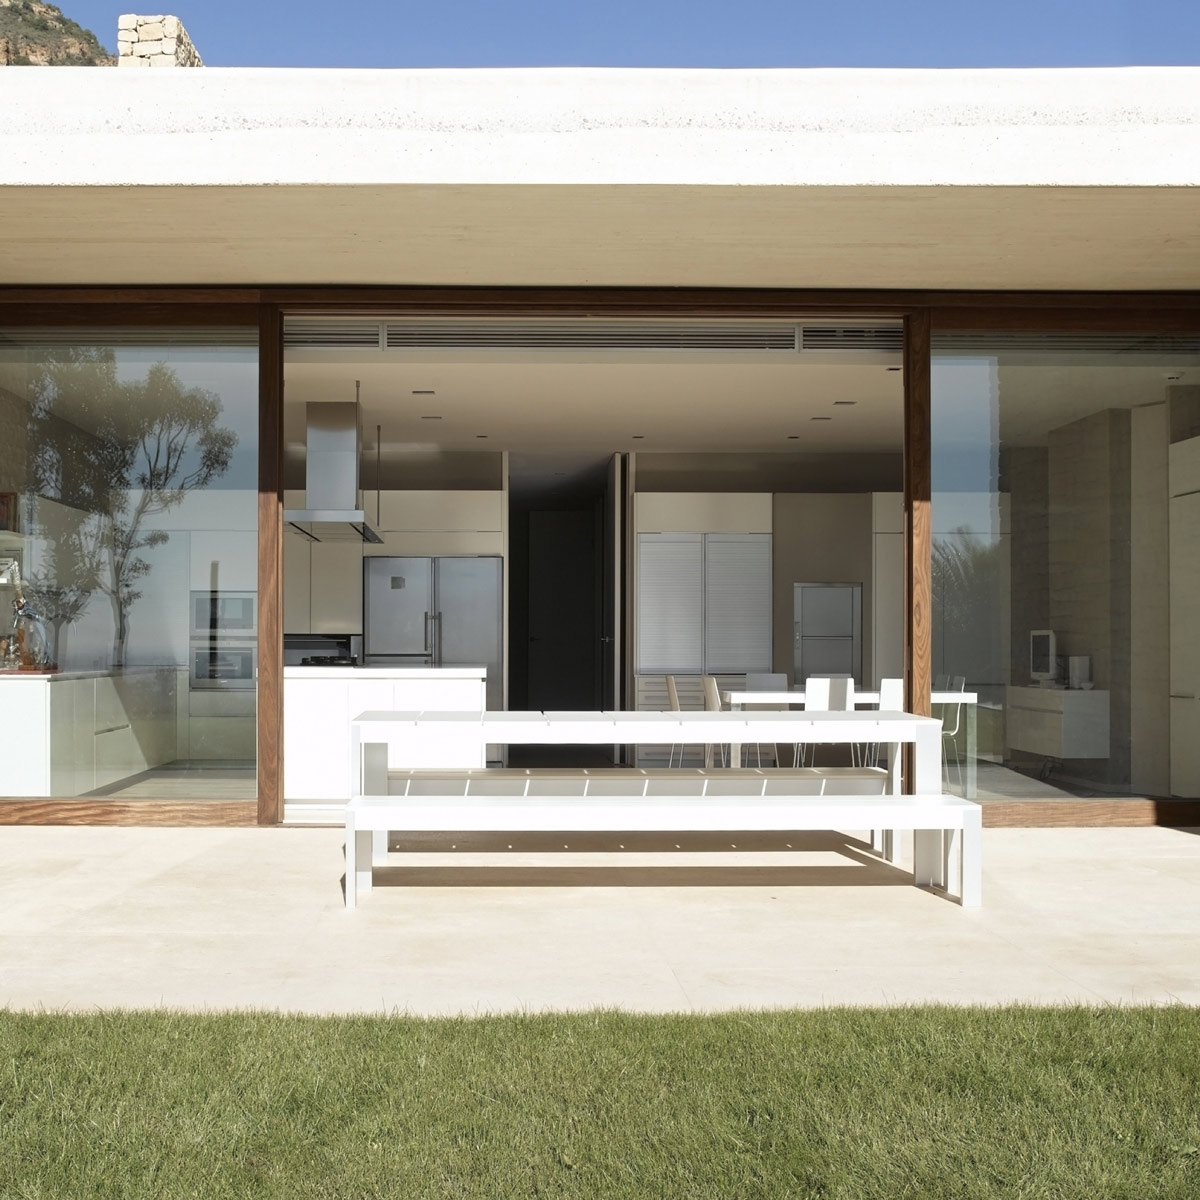 Patio Doors, White Bench, Contemporary Home in Monasterios, Spain